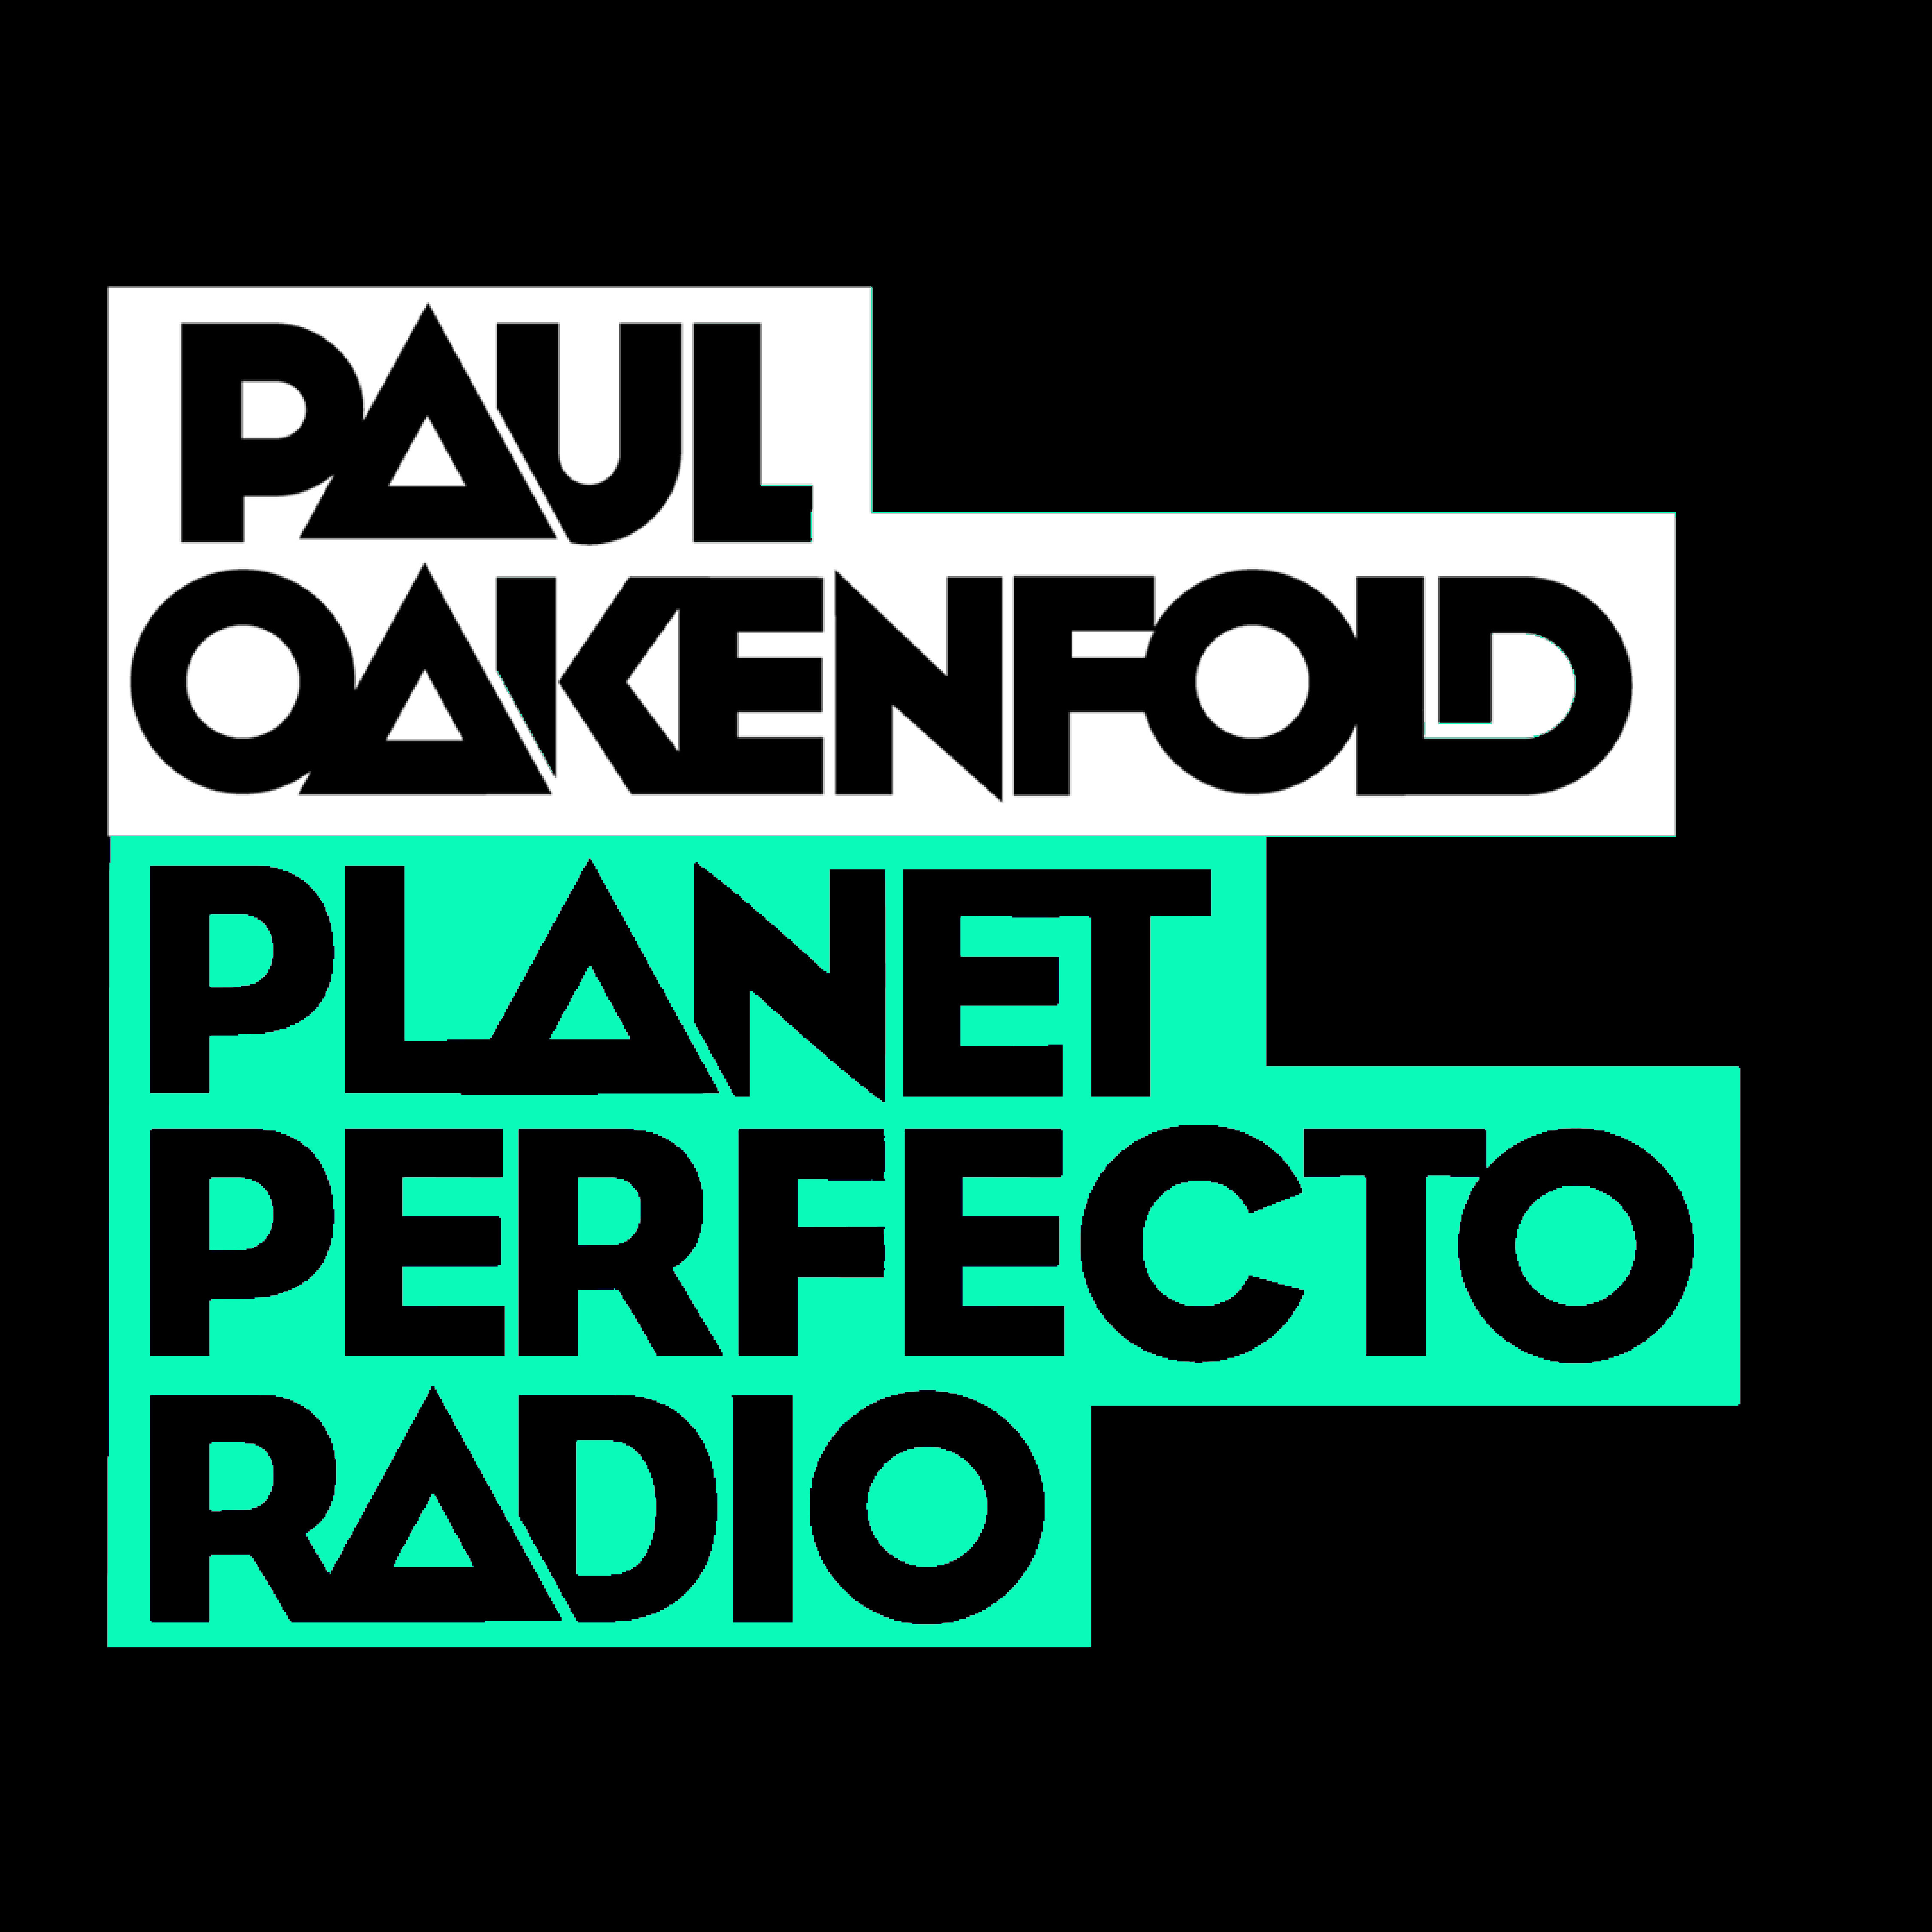 Planet Perfecto Podcast 555 ft. Paul Oakenfold